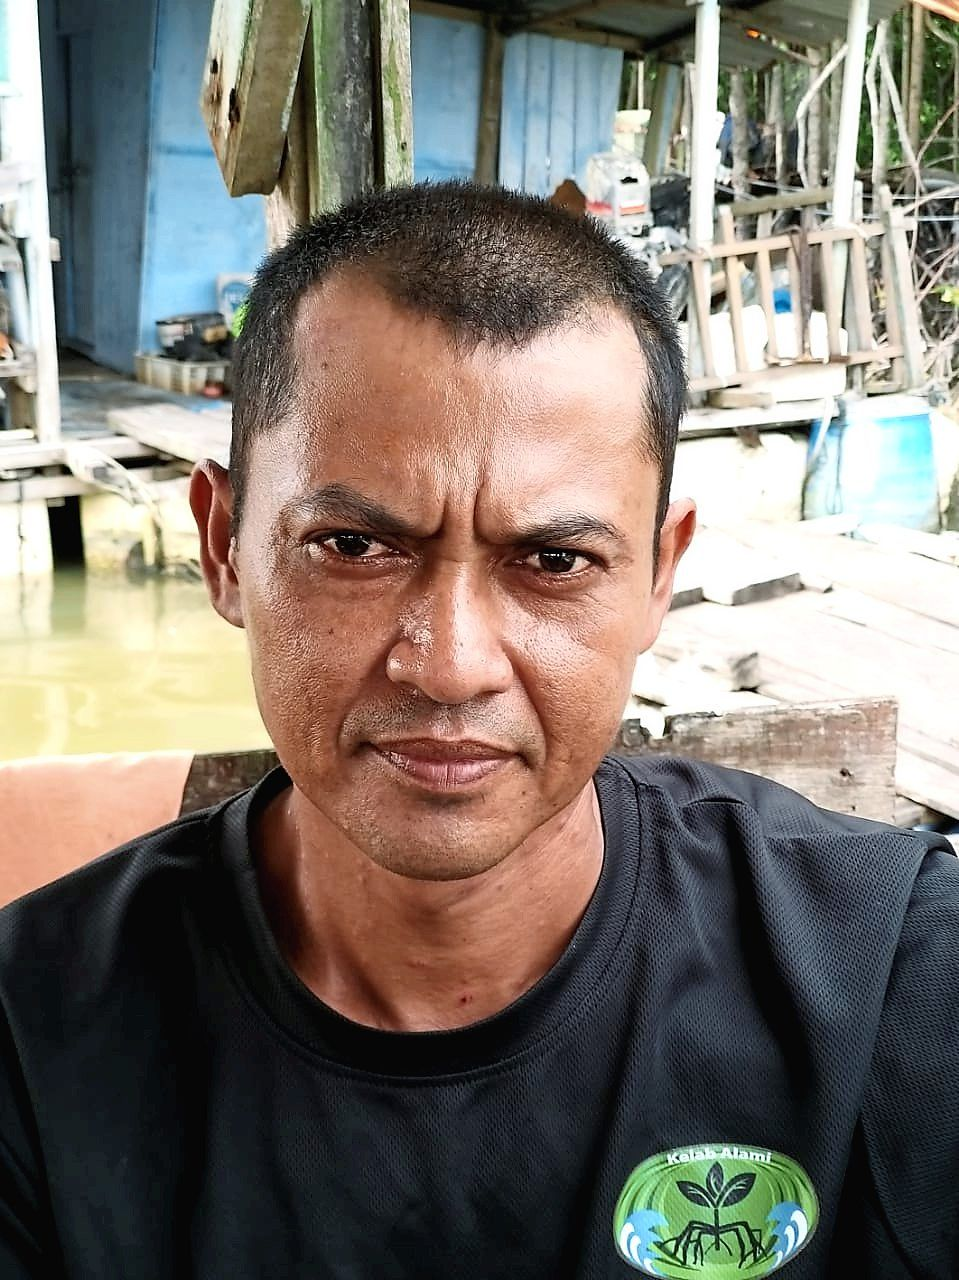 Faidarus says fishing in the Straits of Malacca is dangerous but the fishermen have no choice.